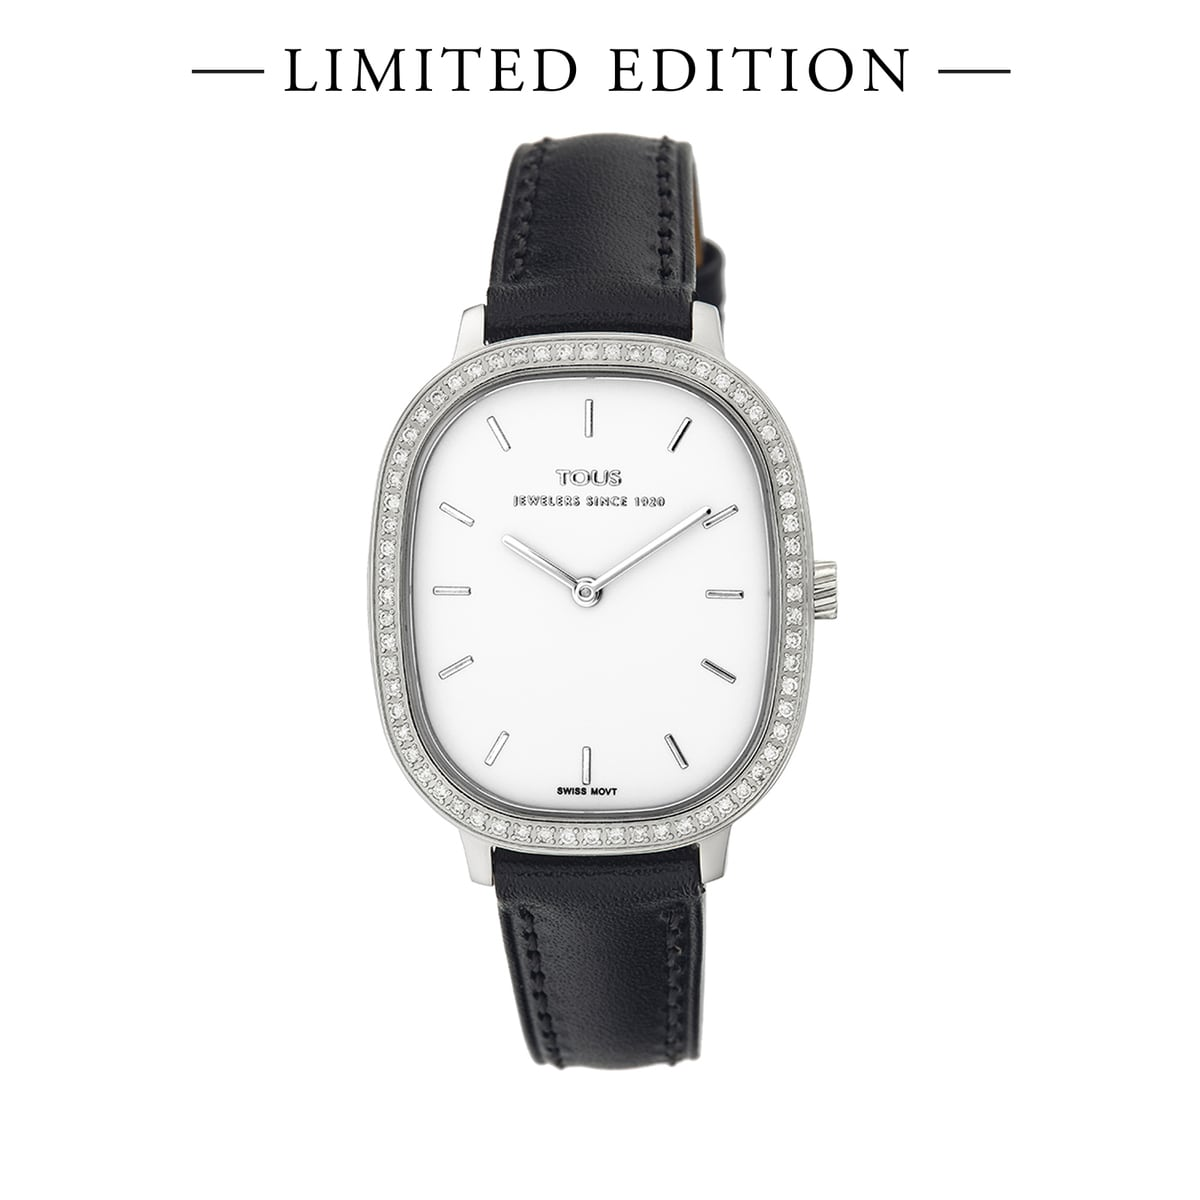 Heritage watch with diamond bezel and black leather strap - Special Edition